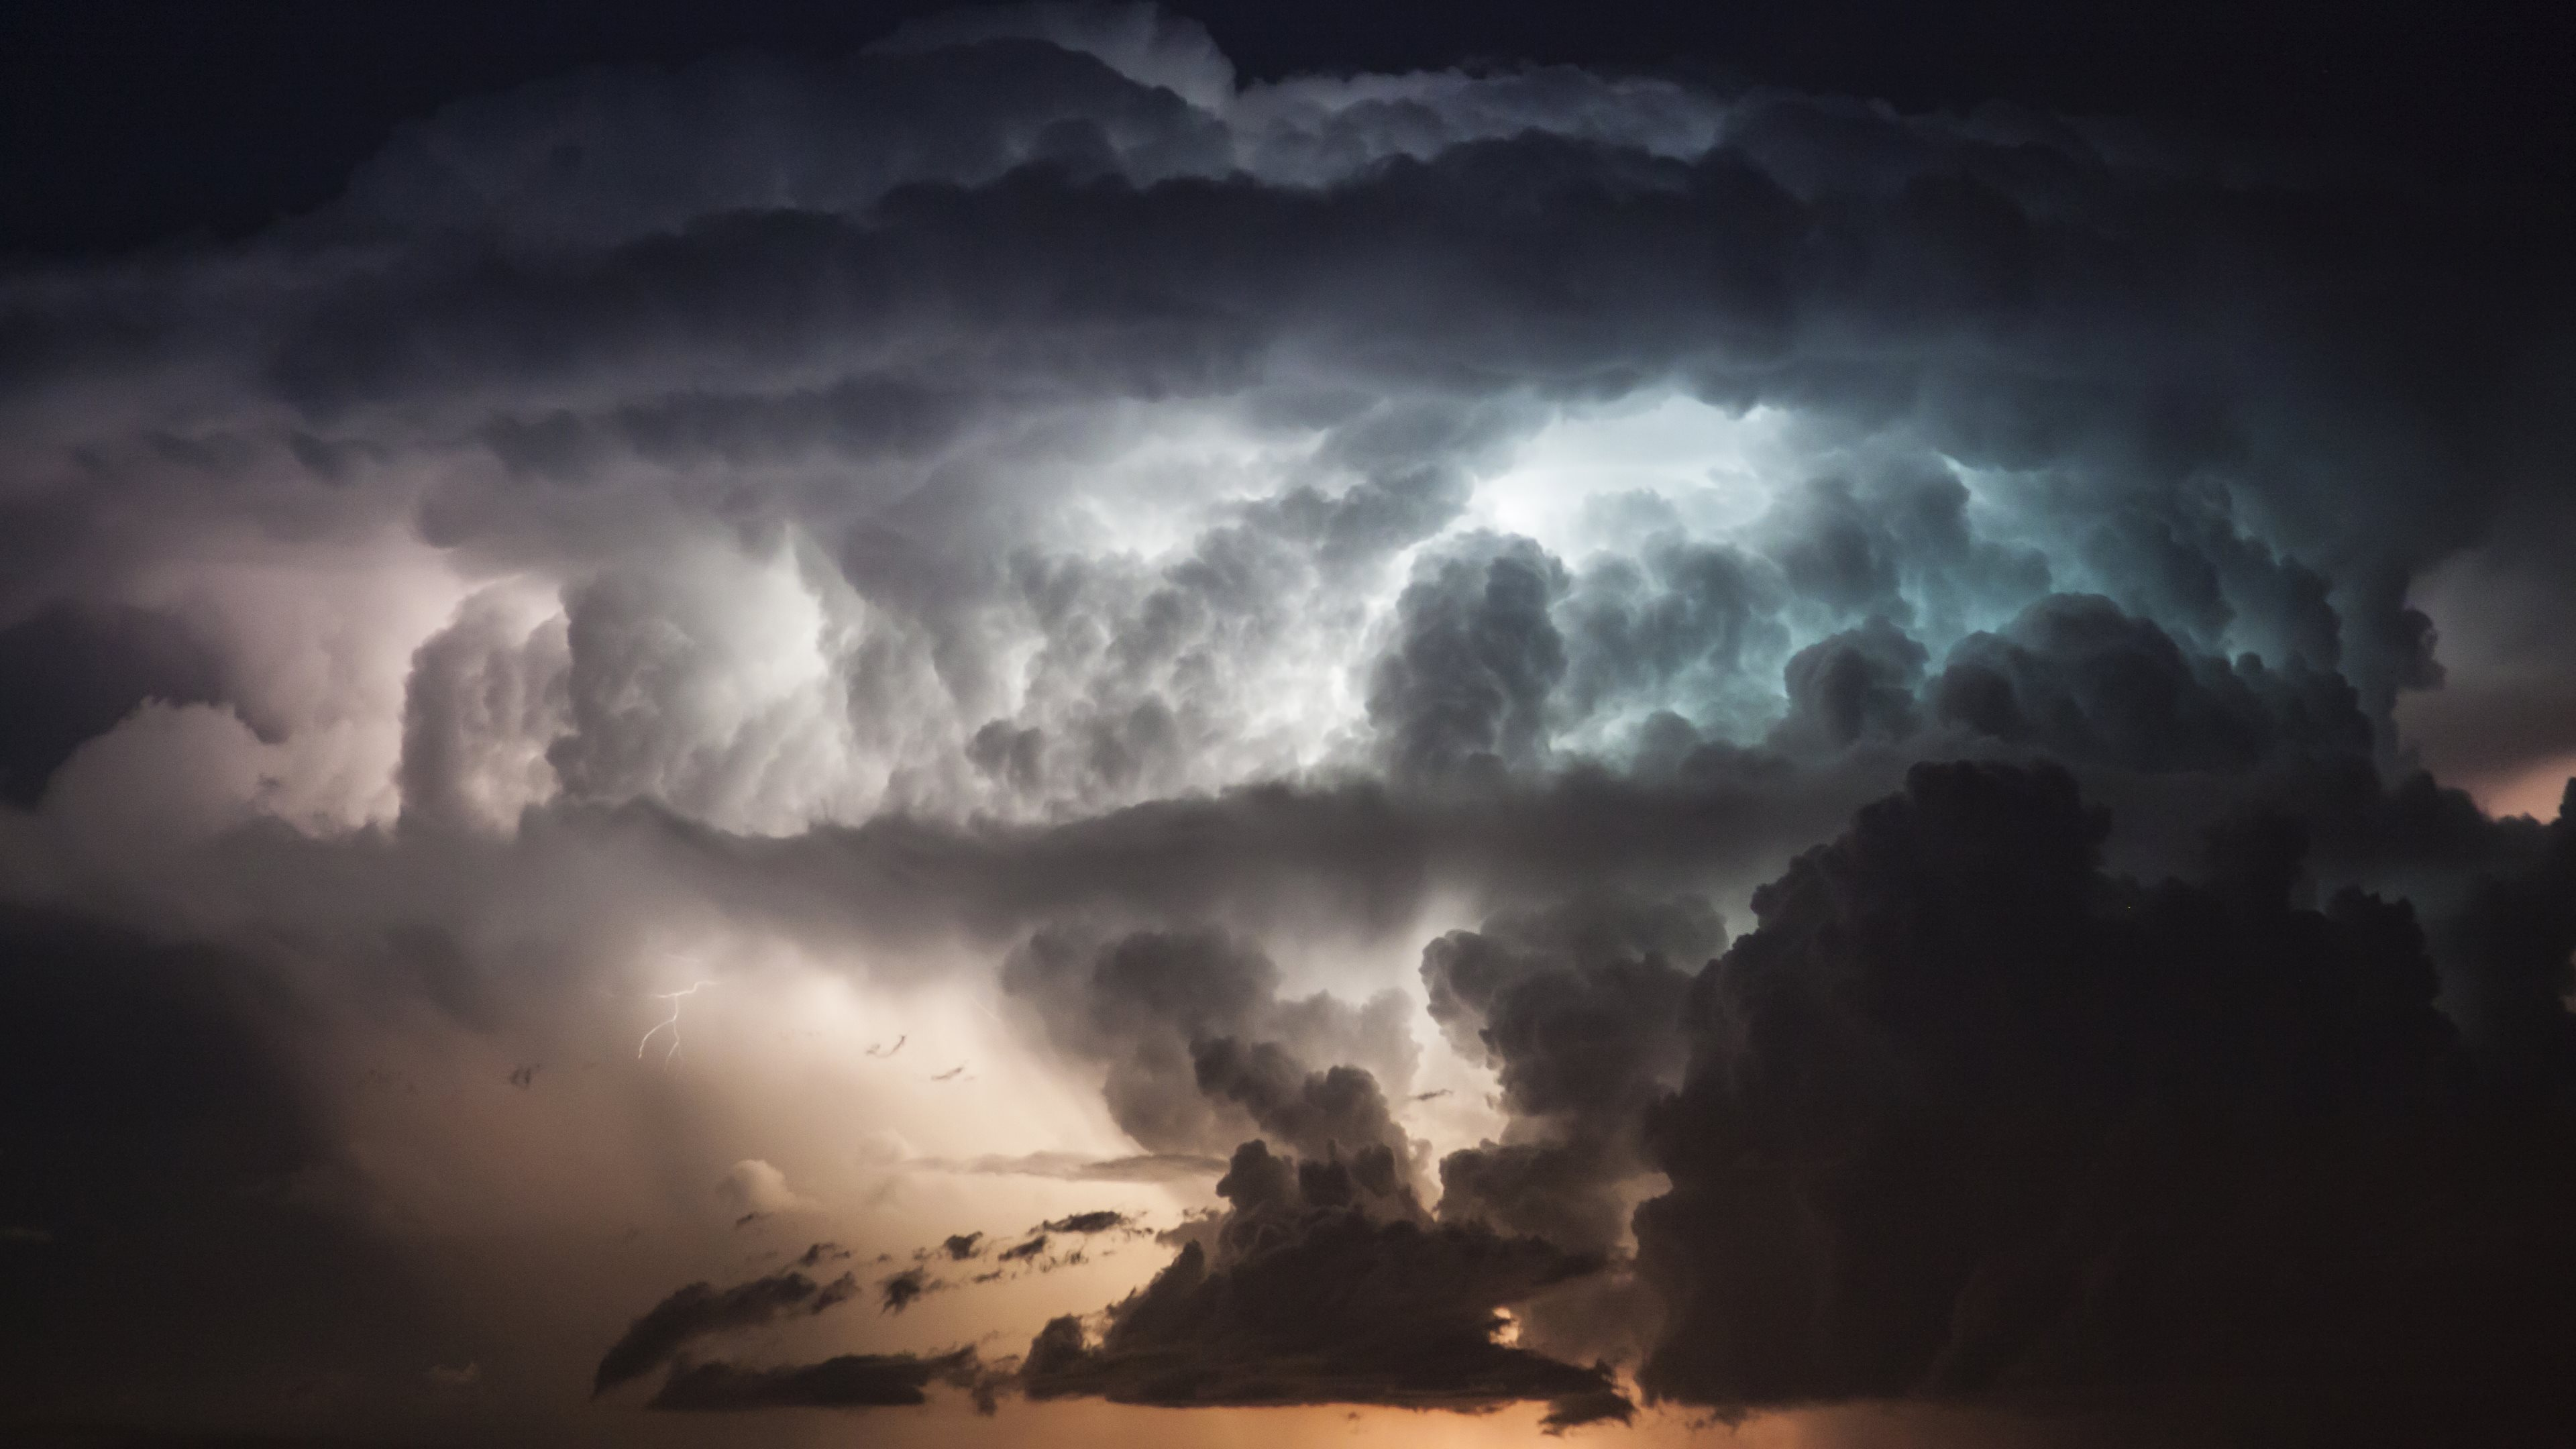 Thunderstorm HD Wallpapers 4K Wallpapers 3840x2160